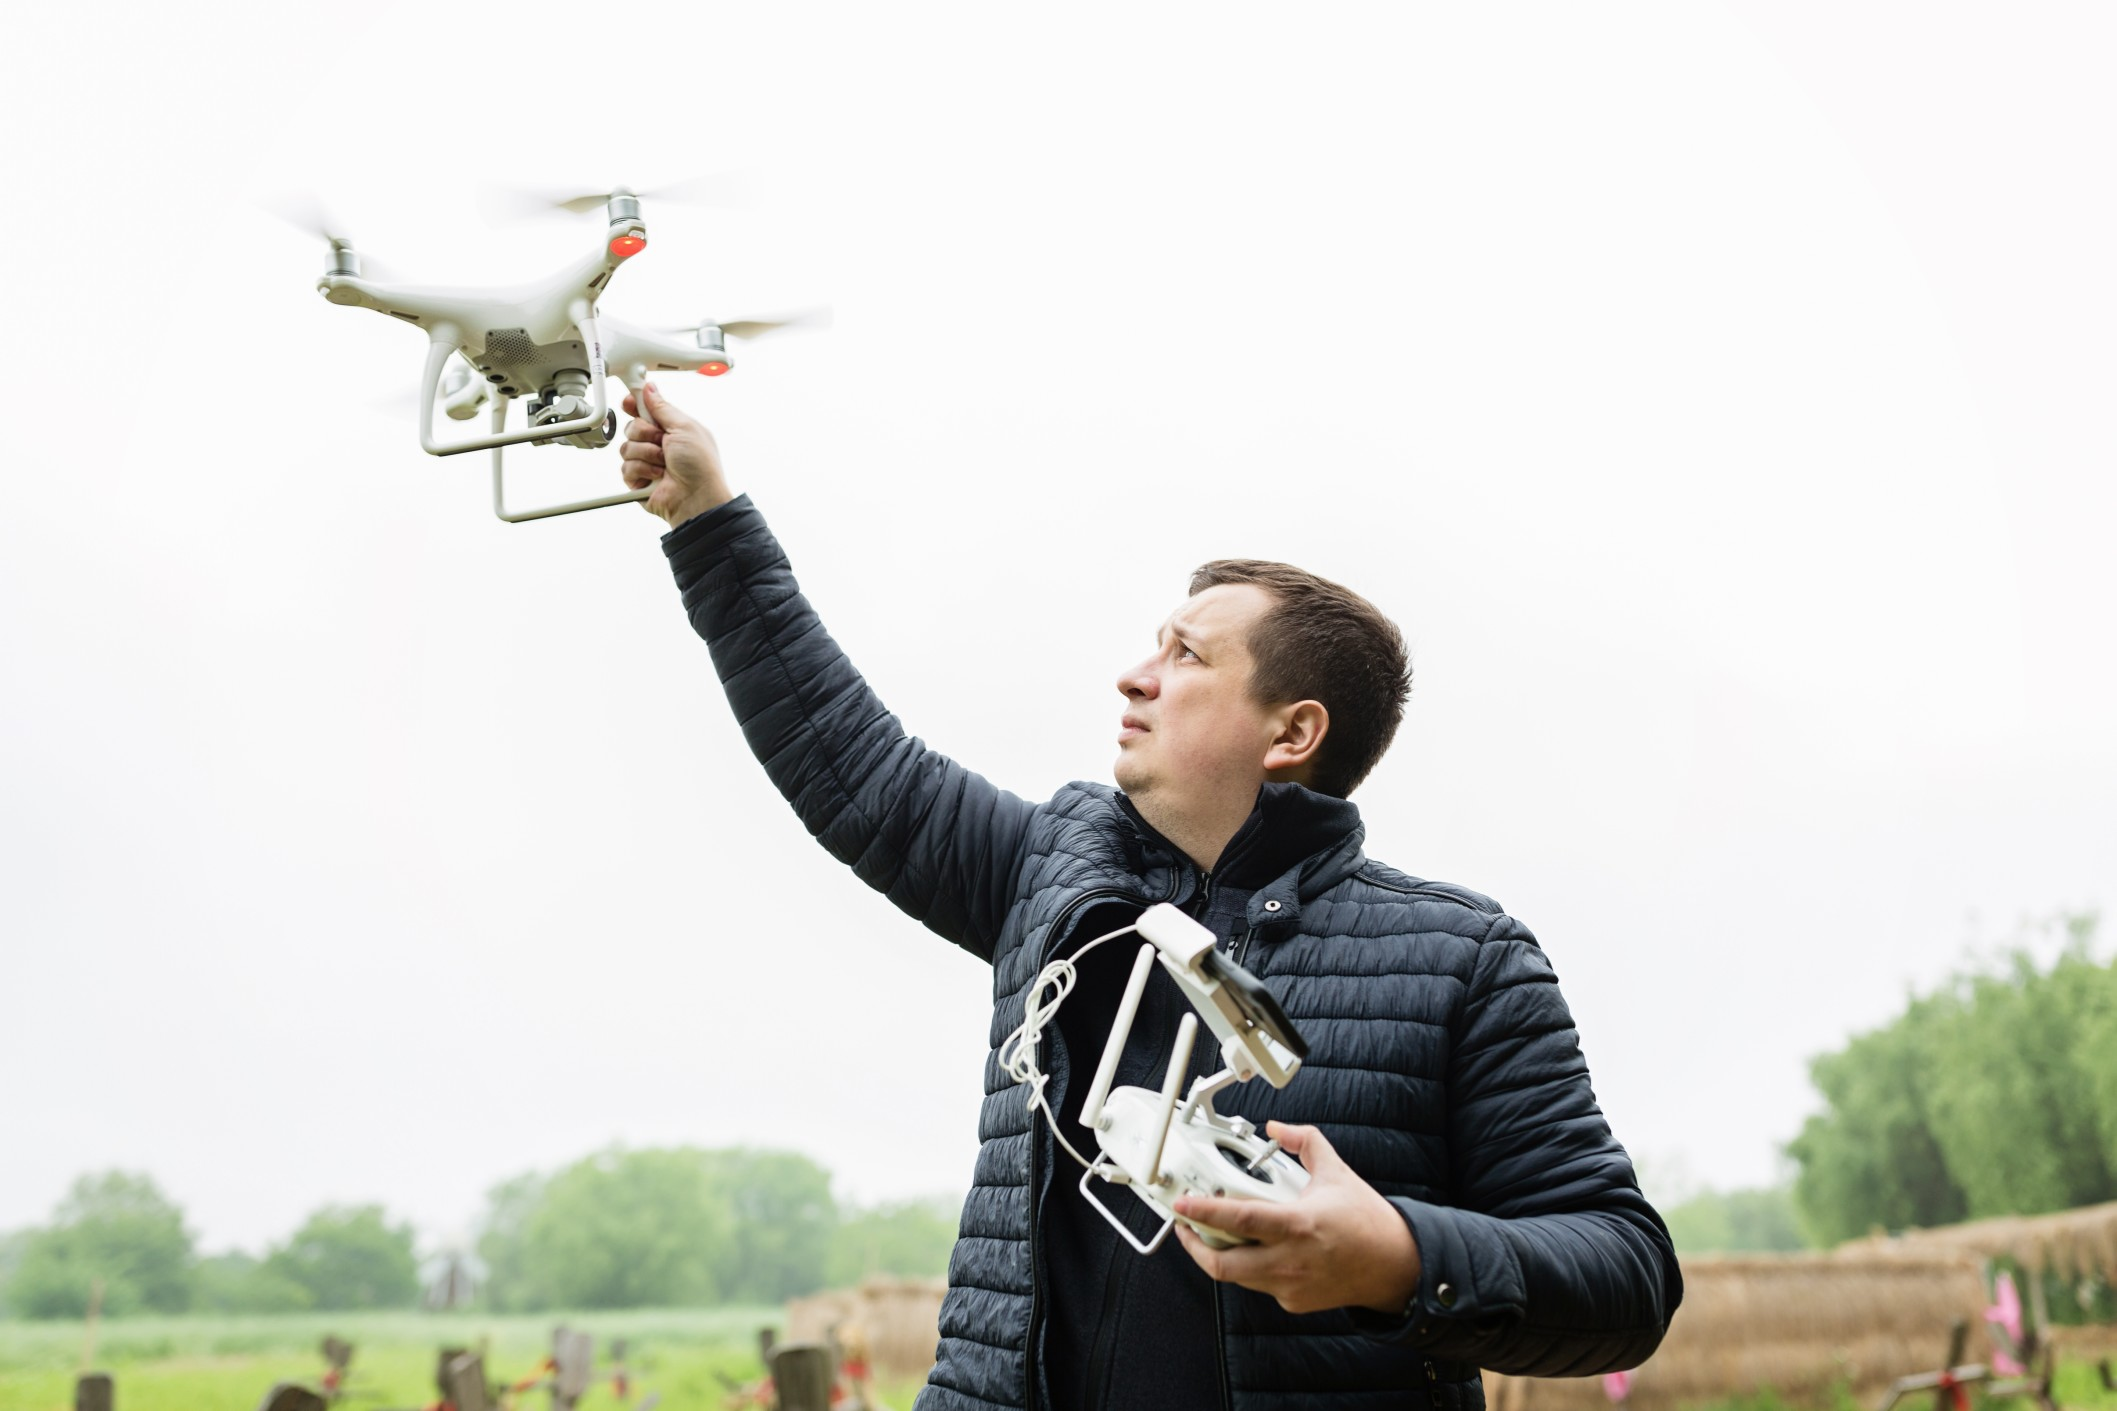 About Drone Videography